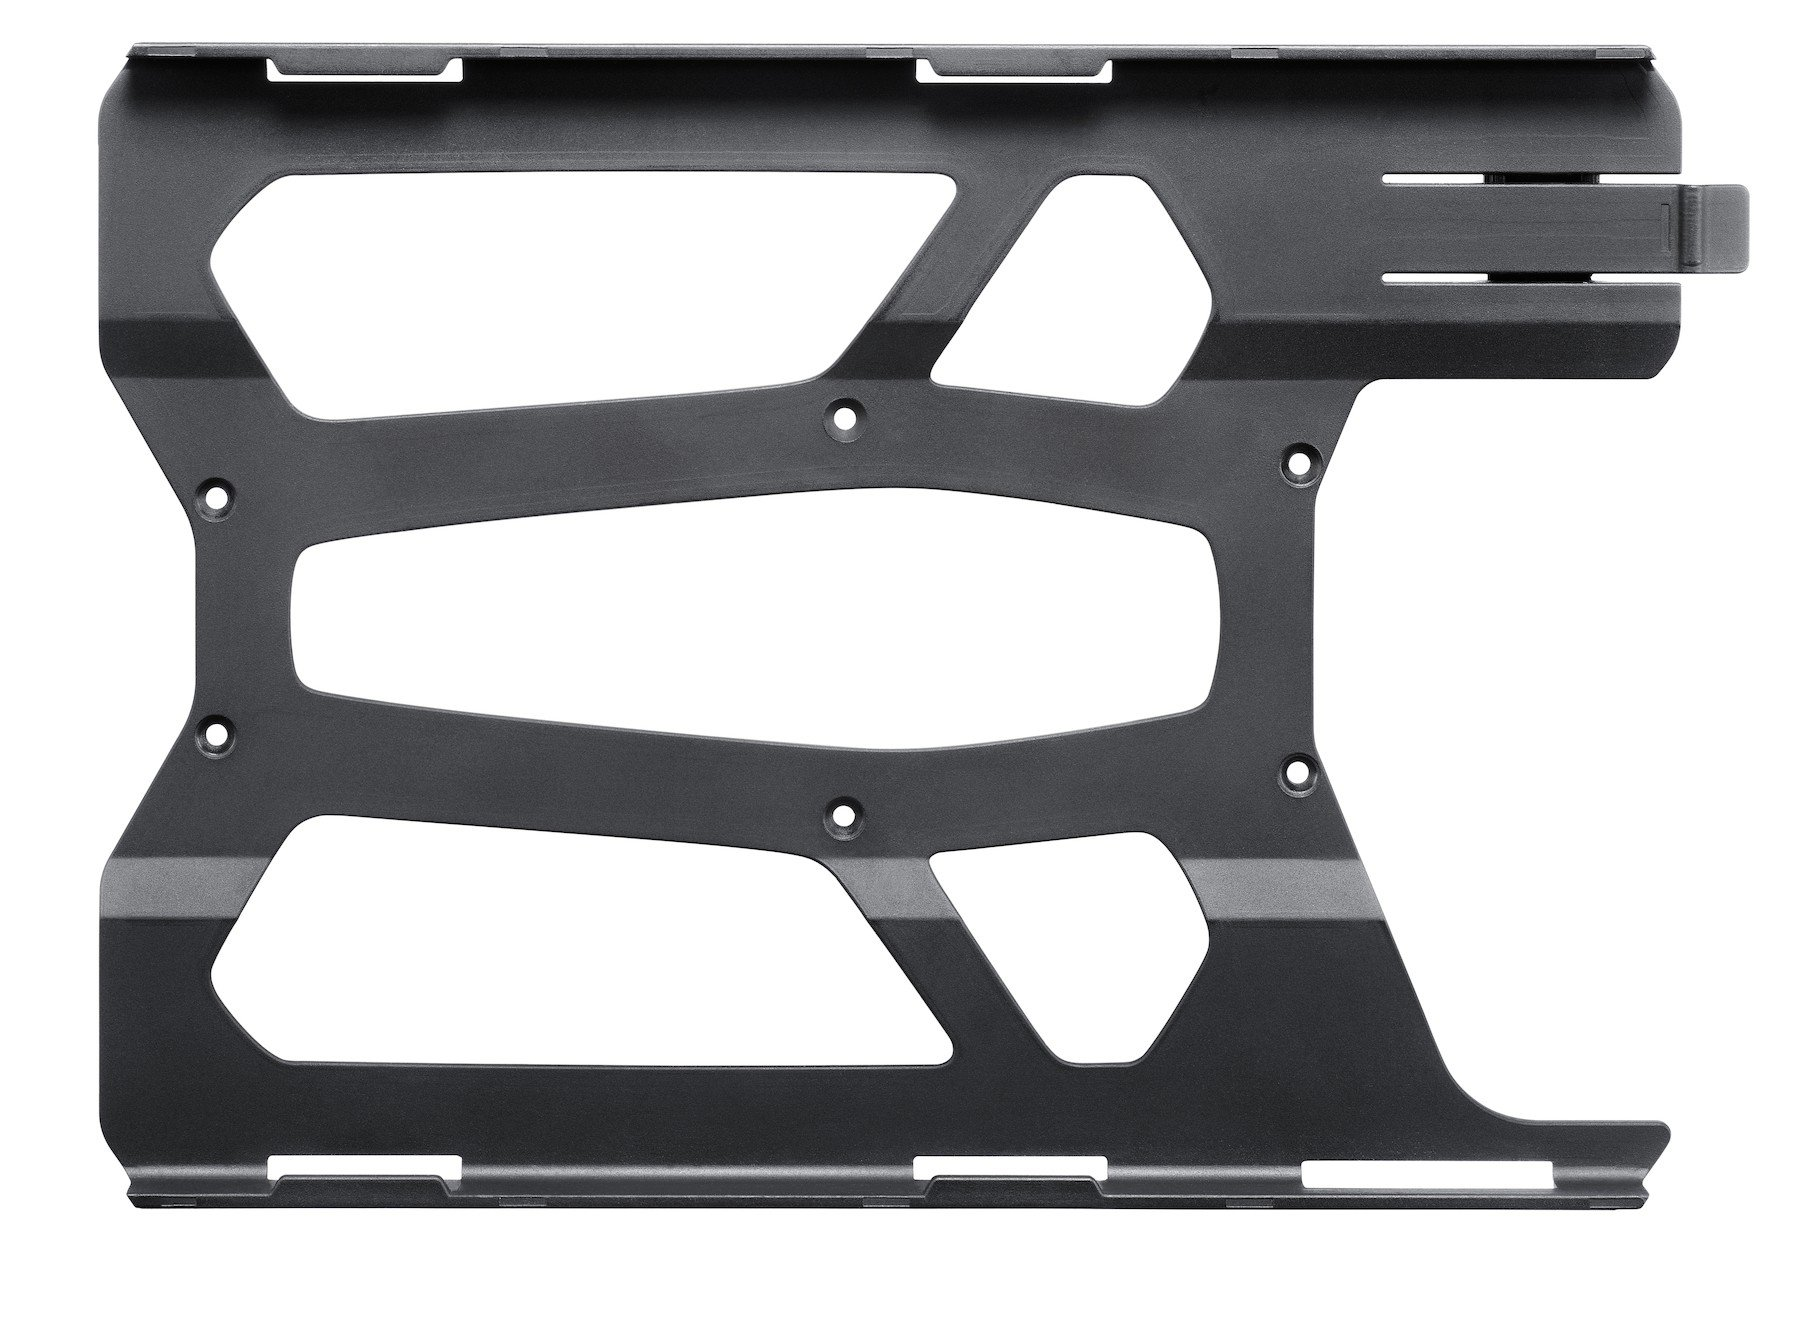 Manfrotto Digital Director iPad Air Frame Converter Frame For iPad Air - MVDDFA MVDDFA